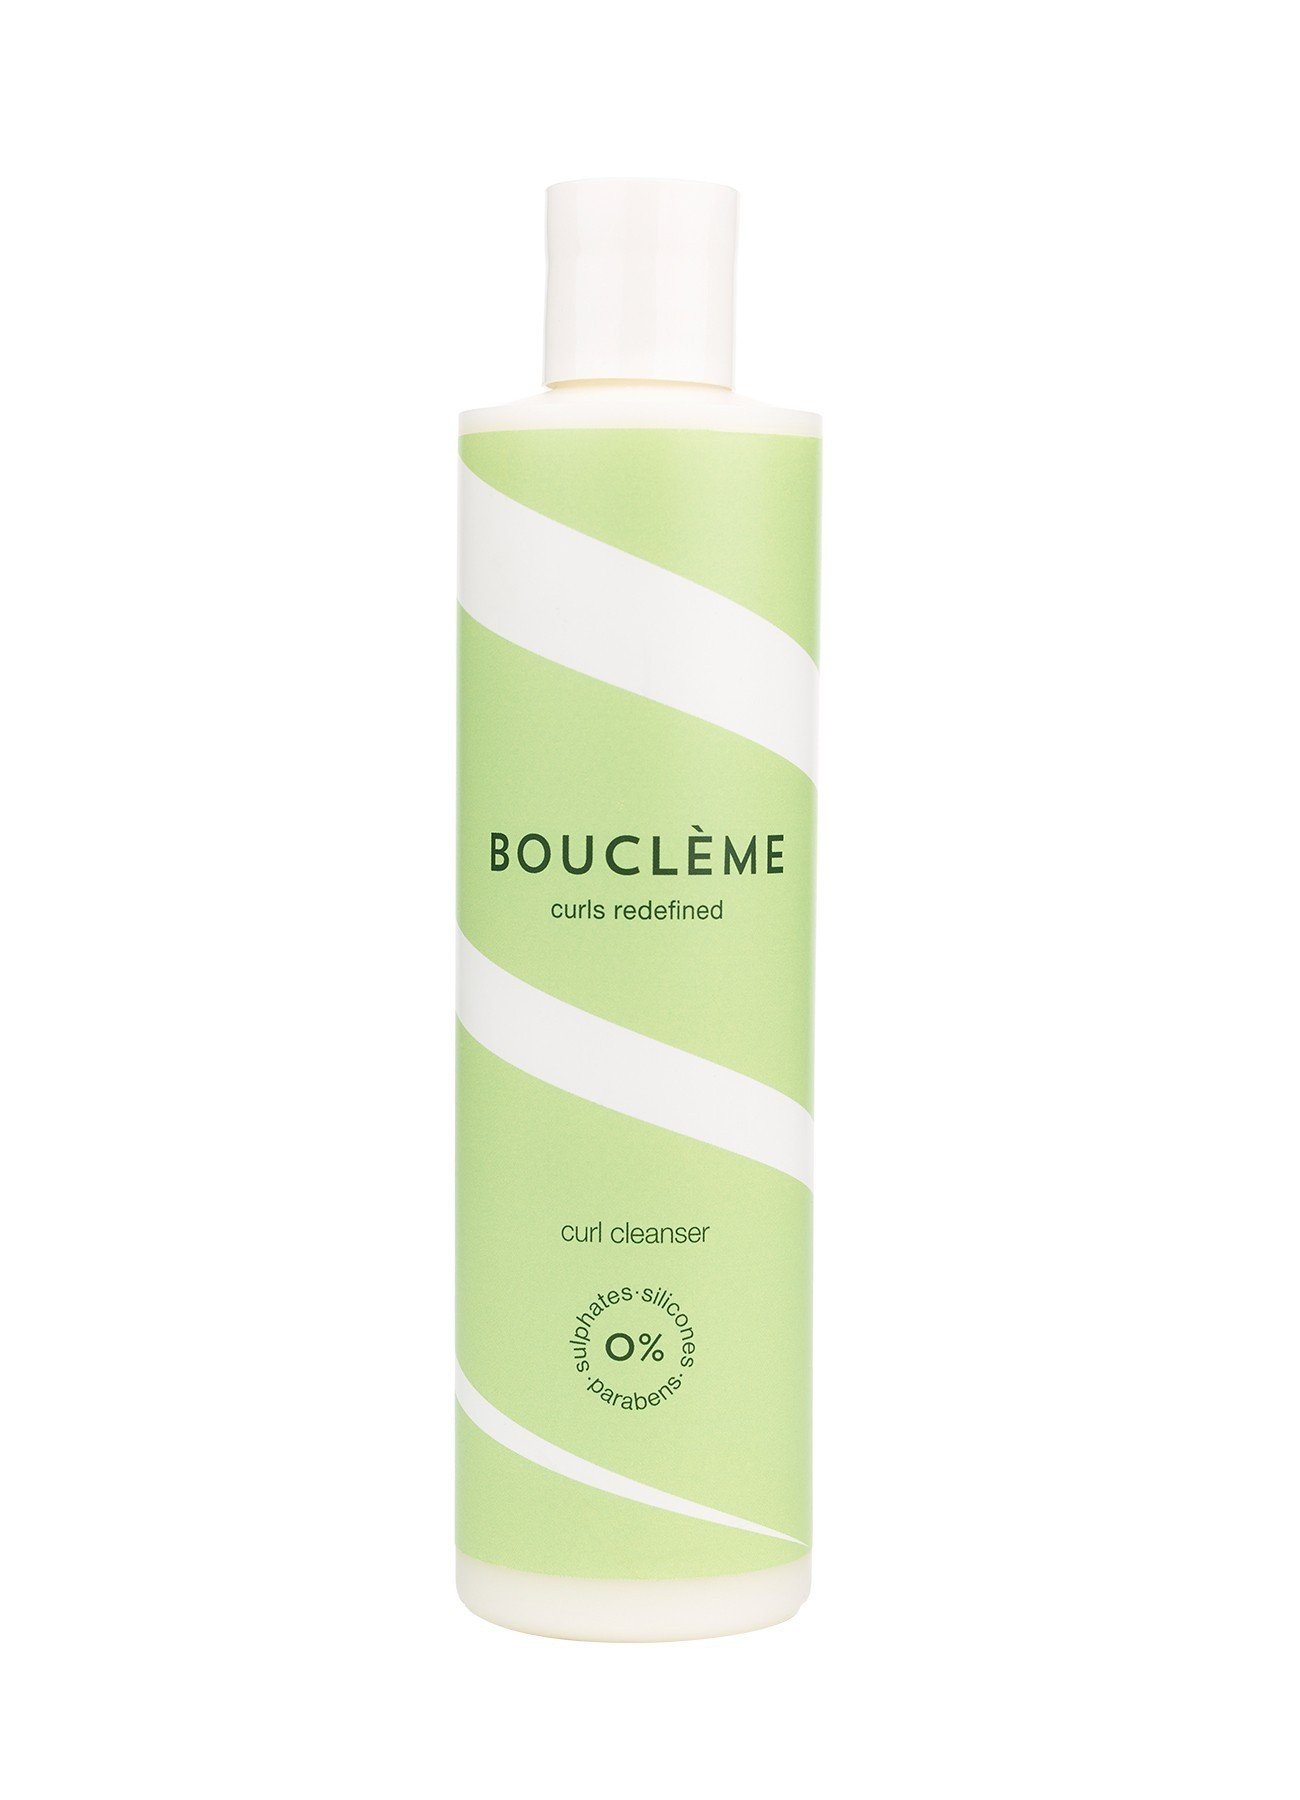 BOUCLEME Curls Redefined Curl Cleanser